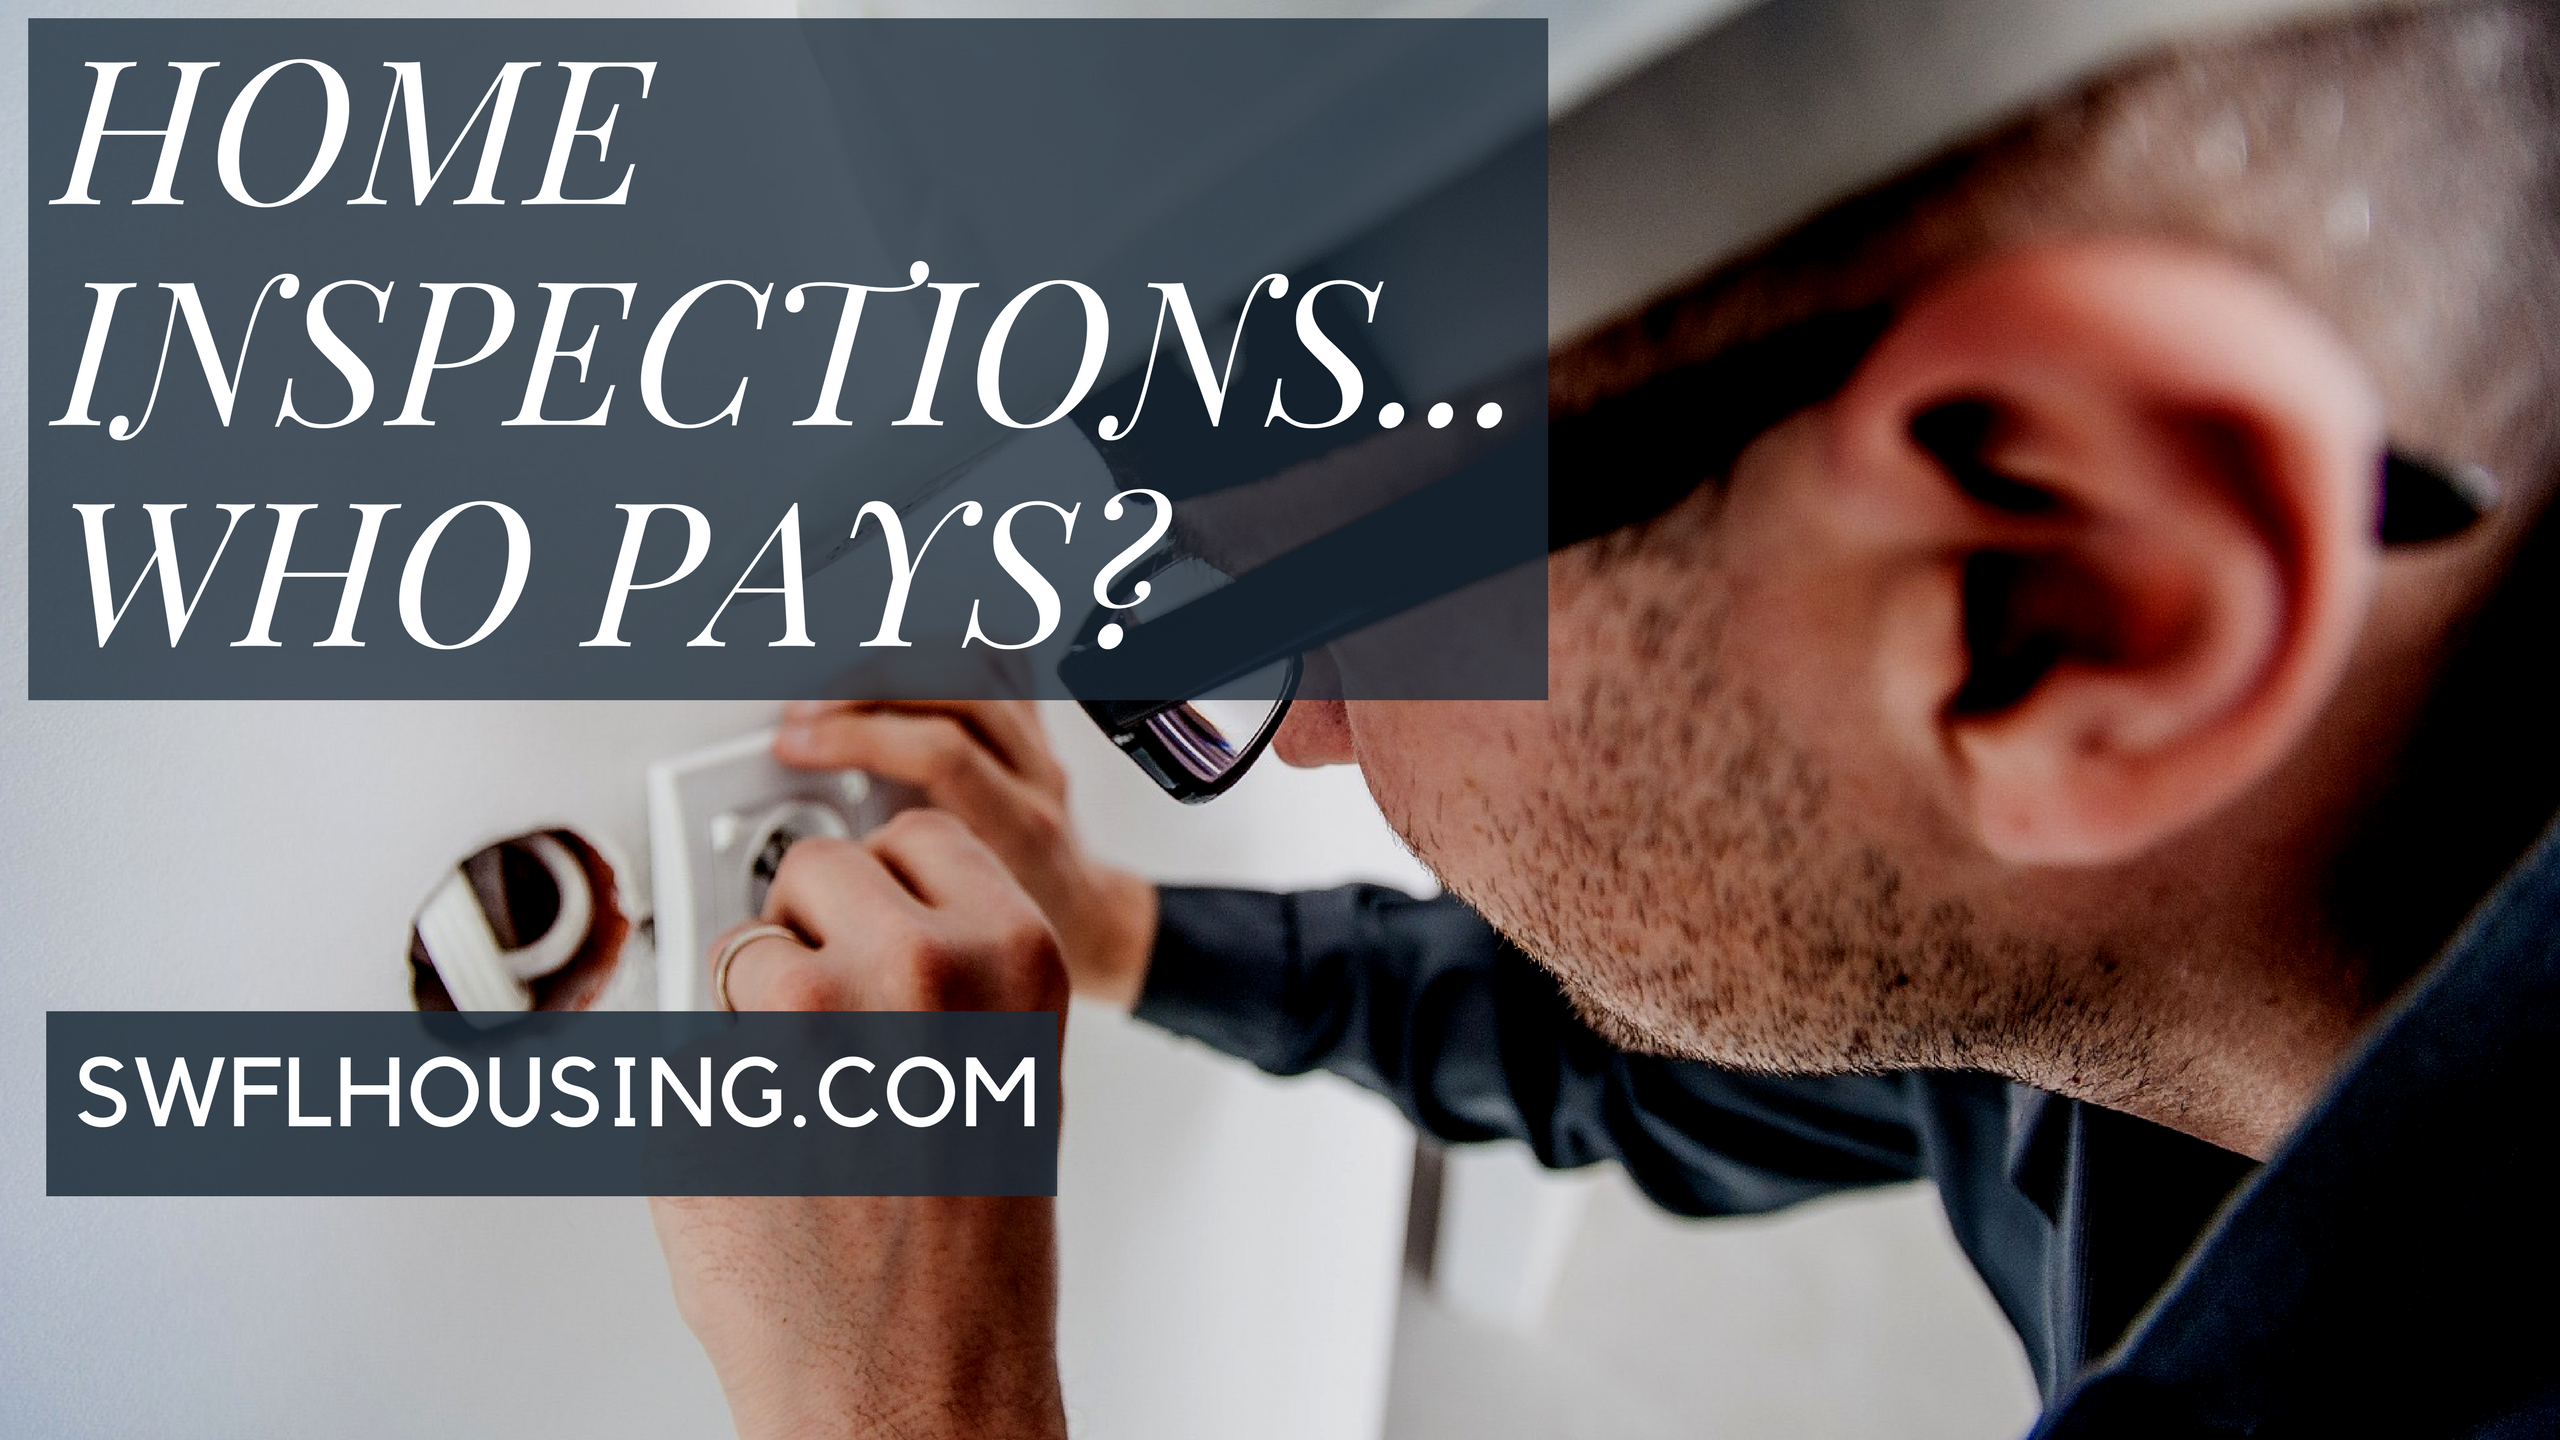 Home iNspections...Who Pays-